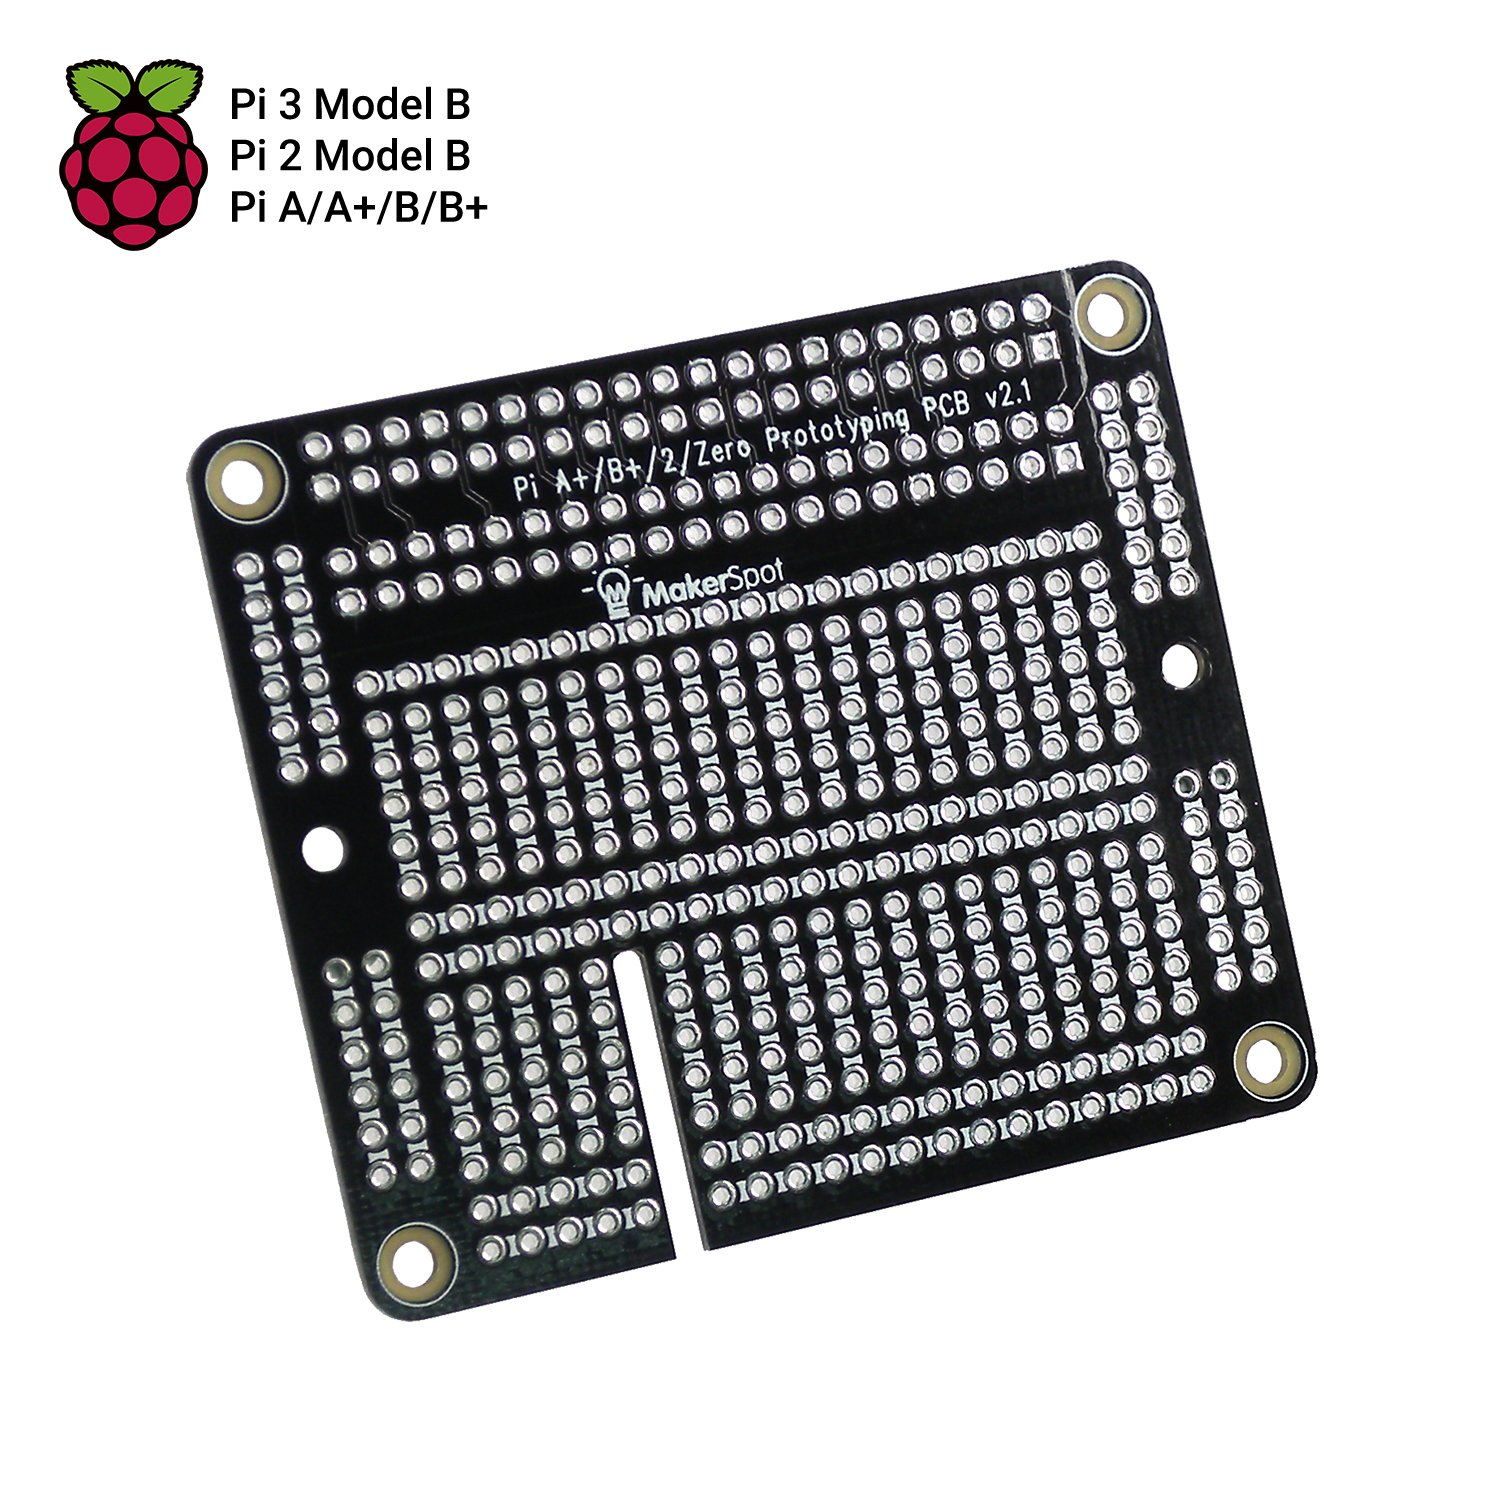 Raspberry Pi 3 Prototyping Board Proto Breadboard Hat By Circuit Soldered On A General Purpose Makerspot With Female Pin Connector Pcb For 2 B 1